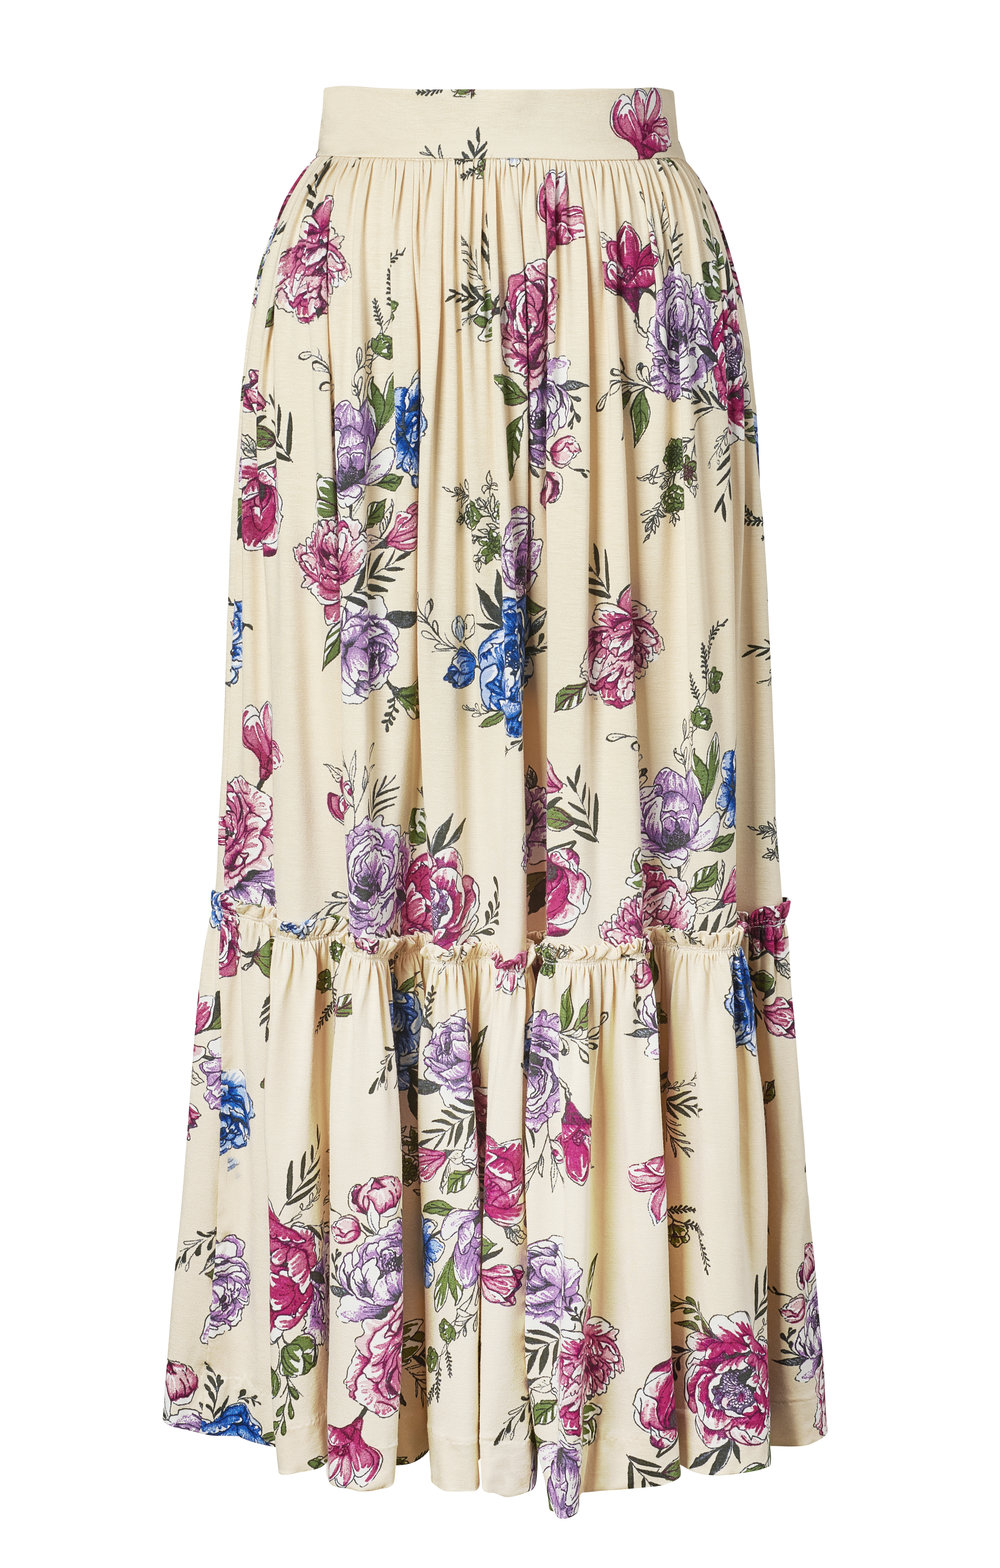 The Passion and the Flower Skirt $200